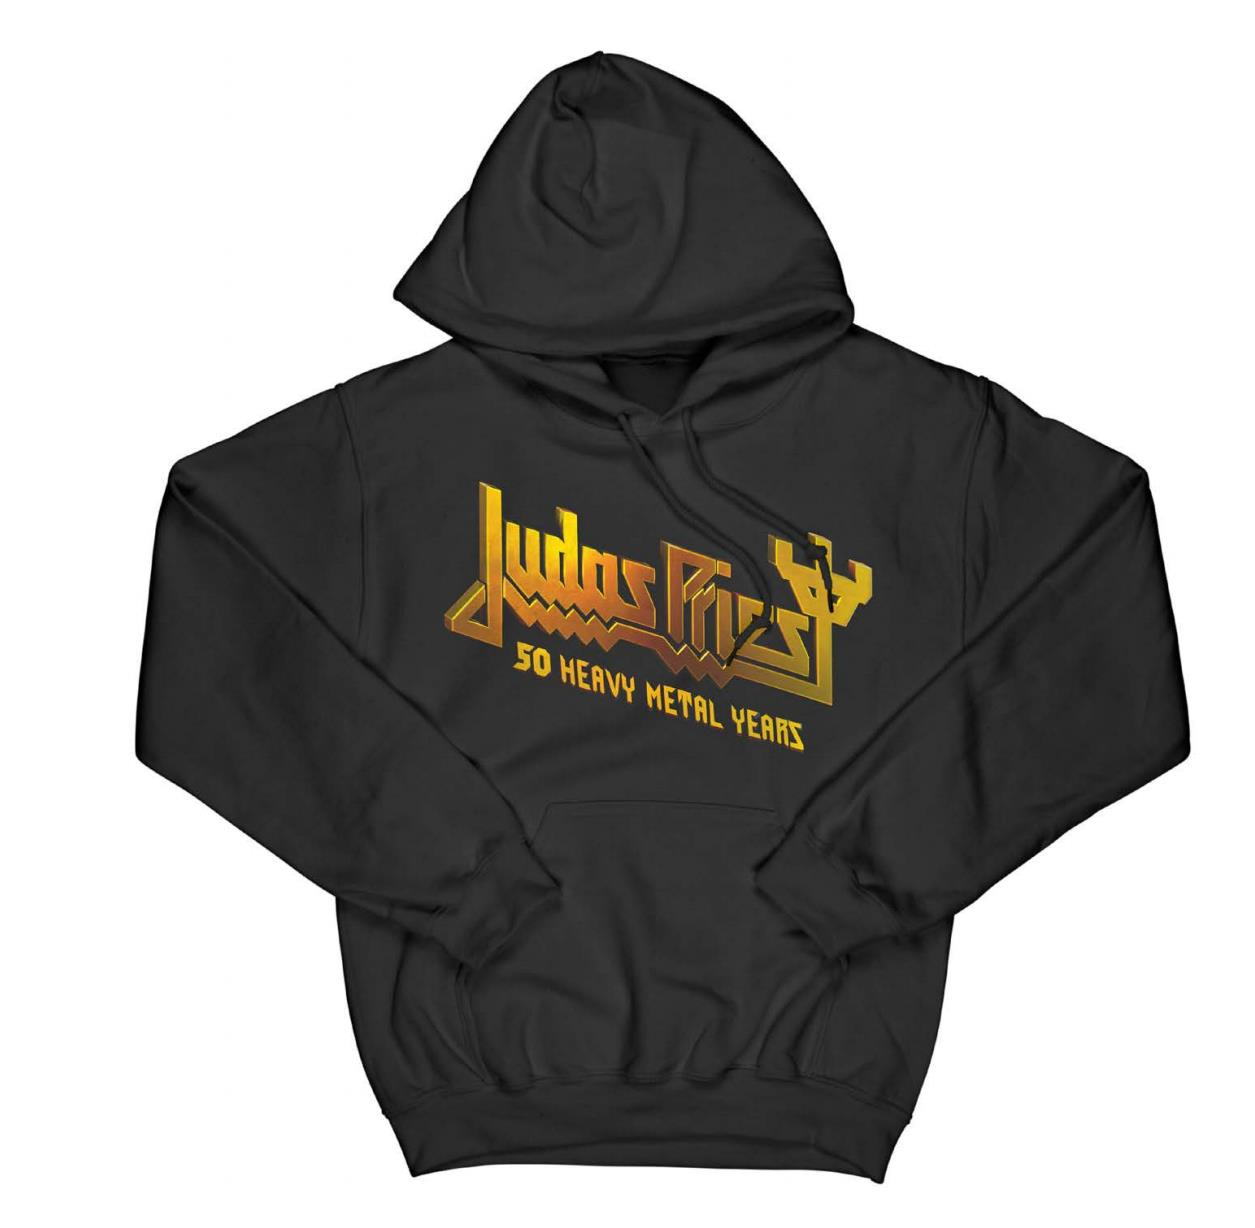 Judas Priest - Official 50 Heavy Metal Years Hoodie